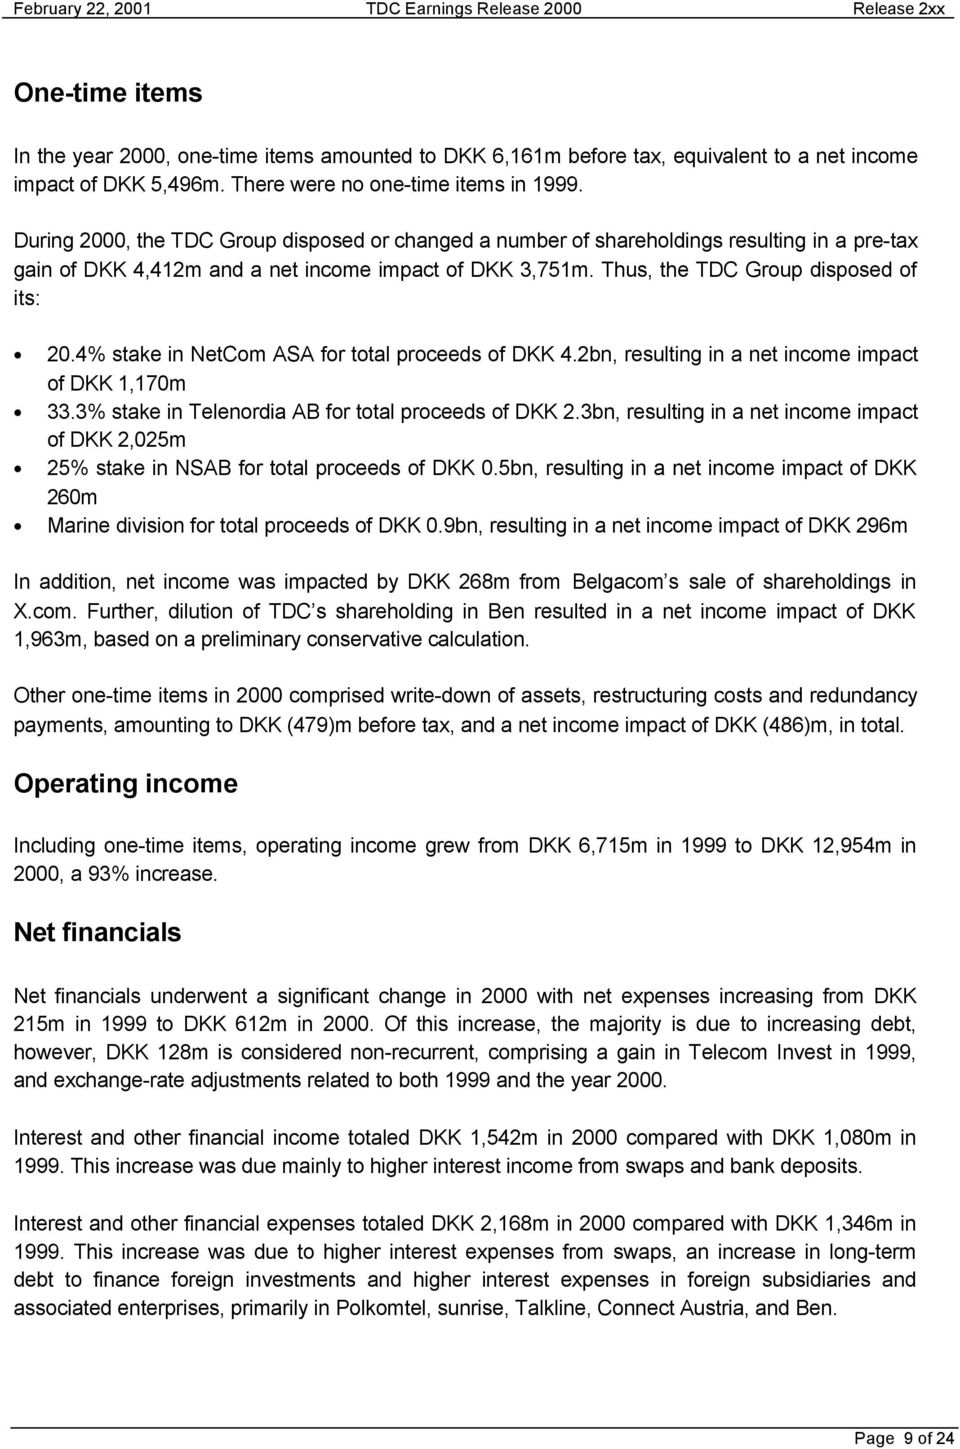 4% stake in NetCom ASA for total proceeds of DKK 4.2bn, resulting in a net income impact of DKK 1,170m 33.3% stake in Telenordia AB for total proceeds of DKK 2.